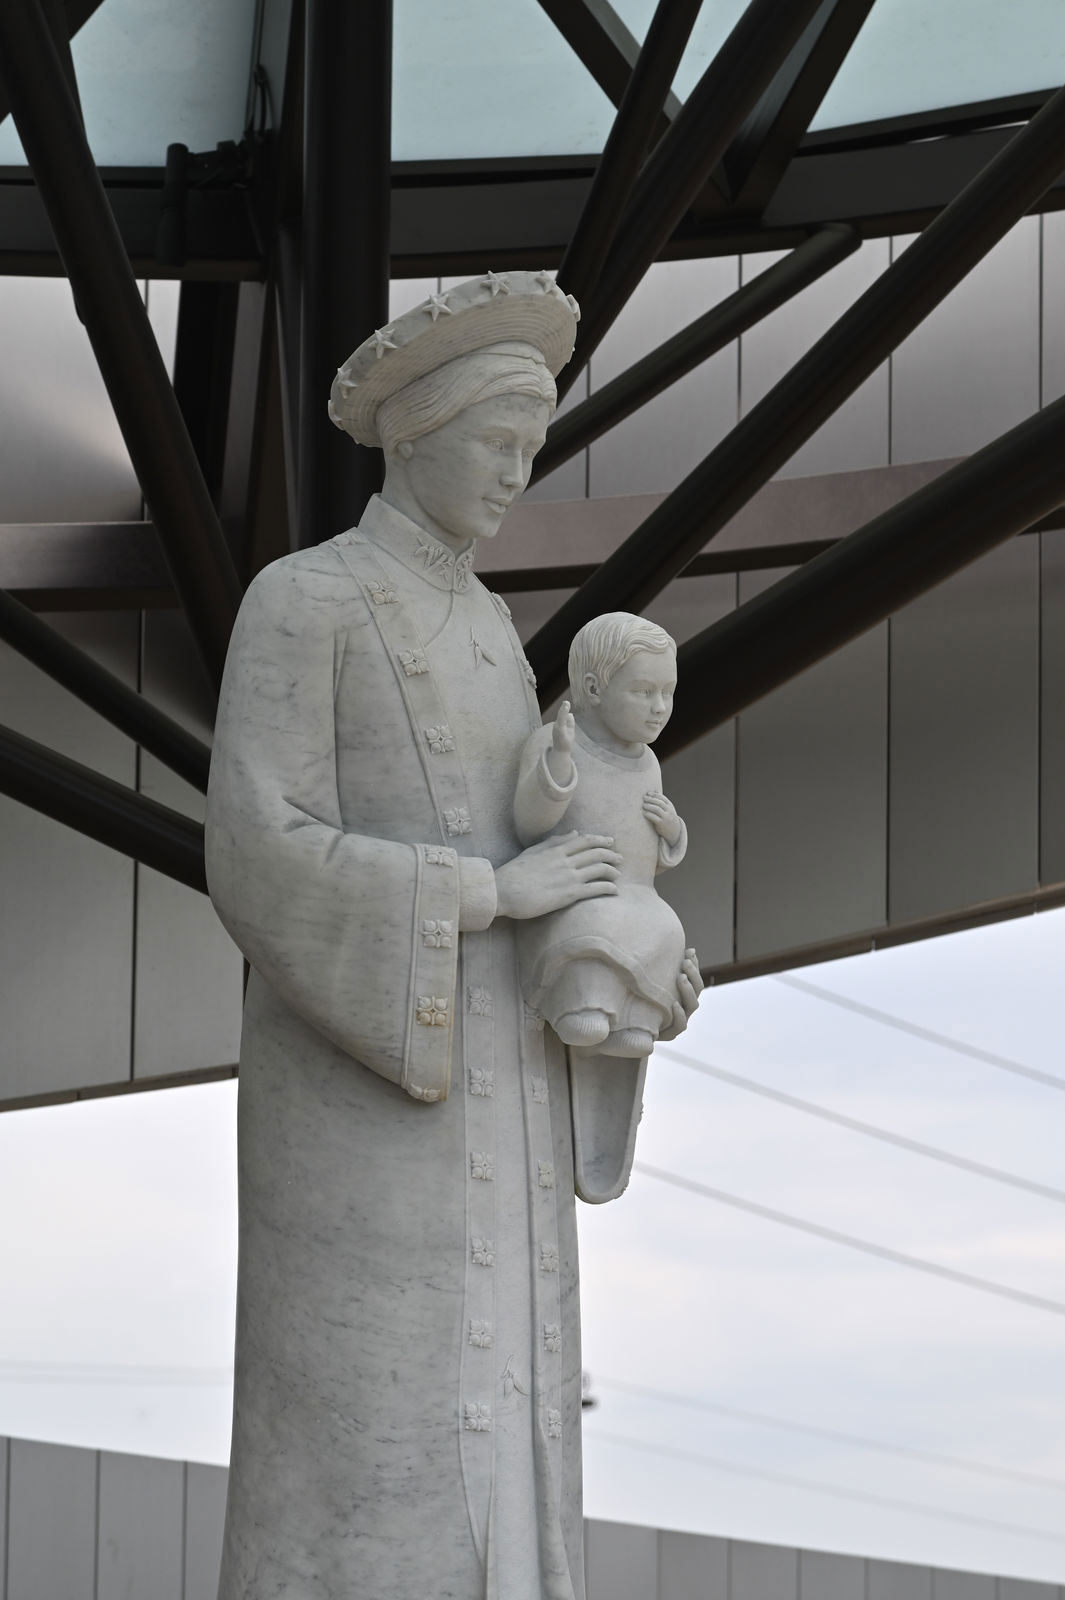 The Our Lady of La Vang statue is 12 feet tall and weighs and estimated 16,000 pounds. It was carved from white marble extracted from a quarry in Carrara, Italy. Photo courtesy Diocese of Orange.